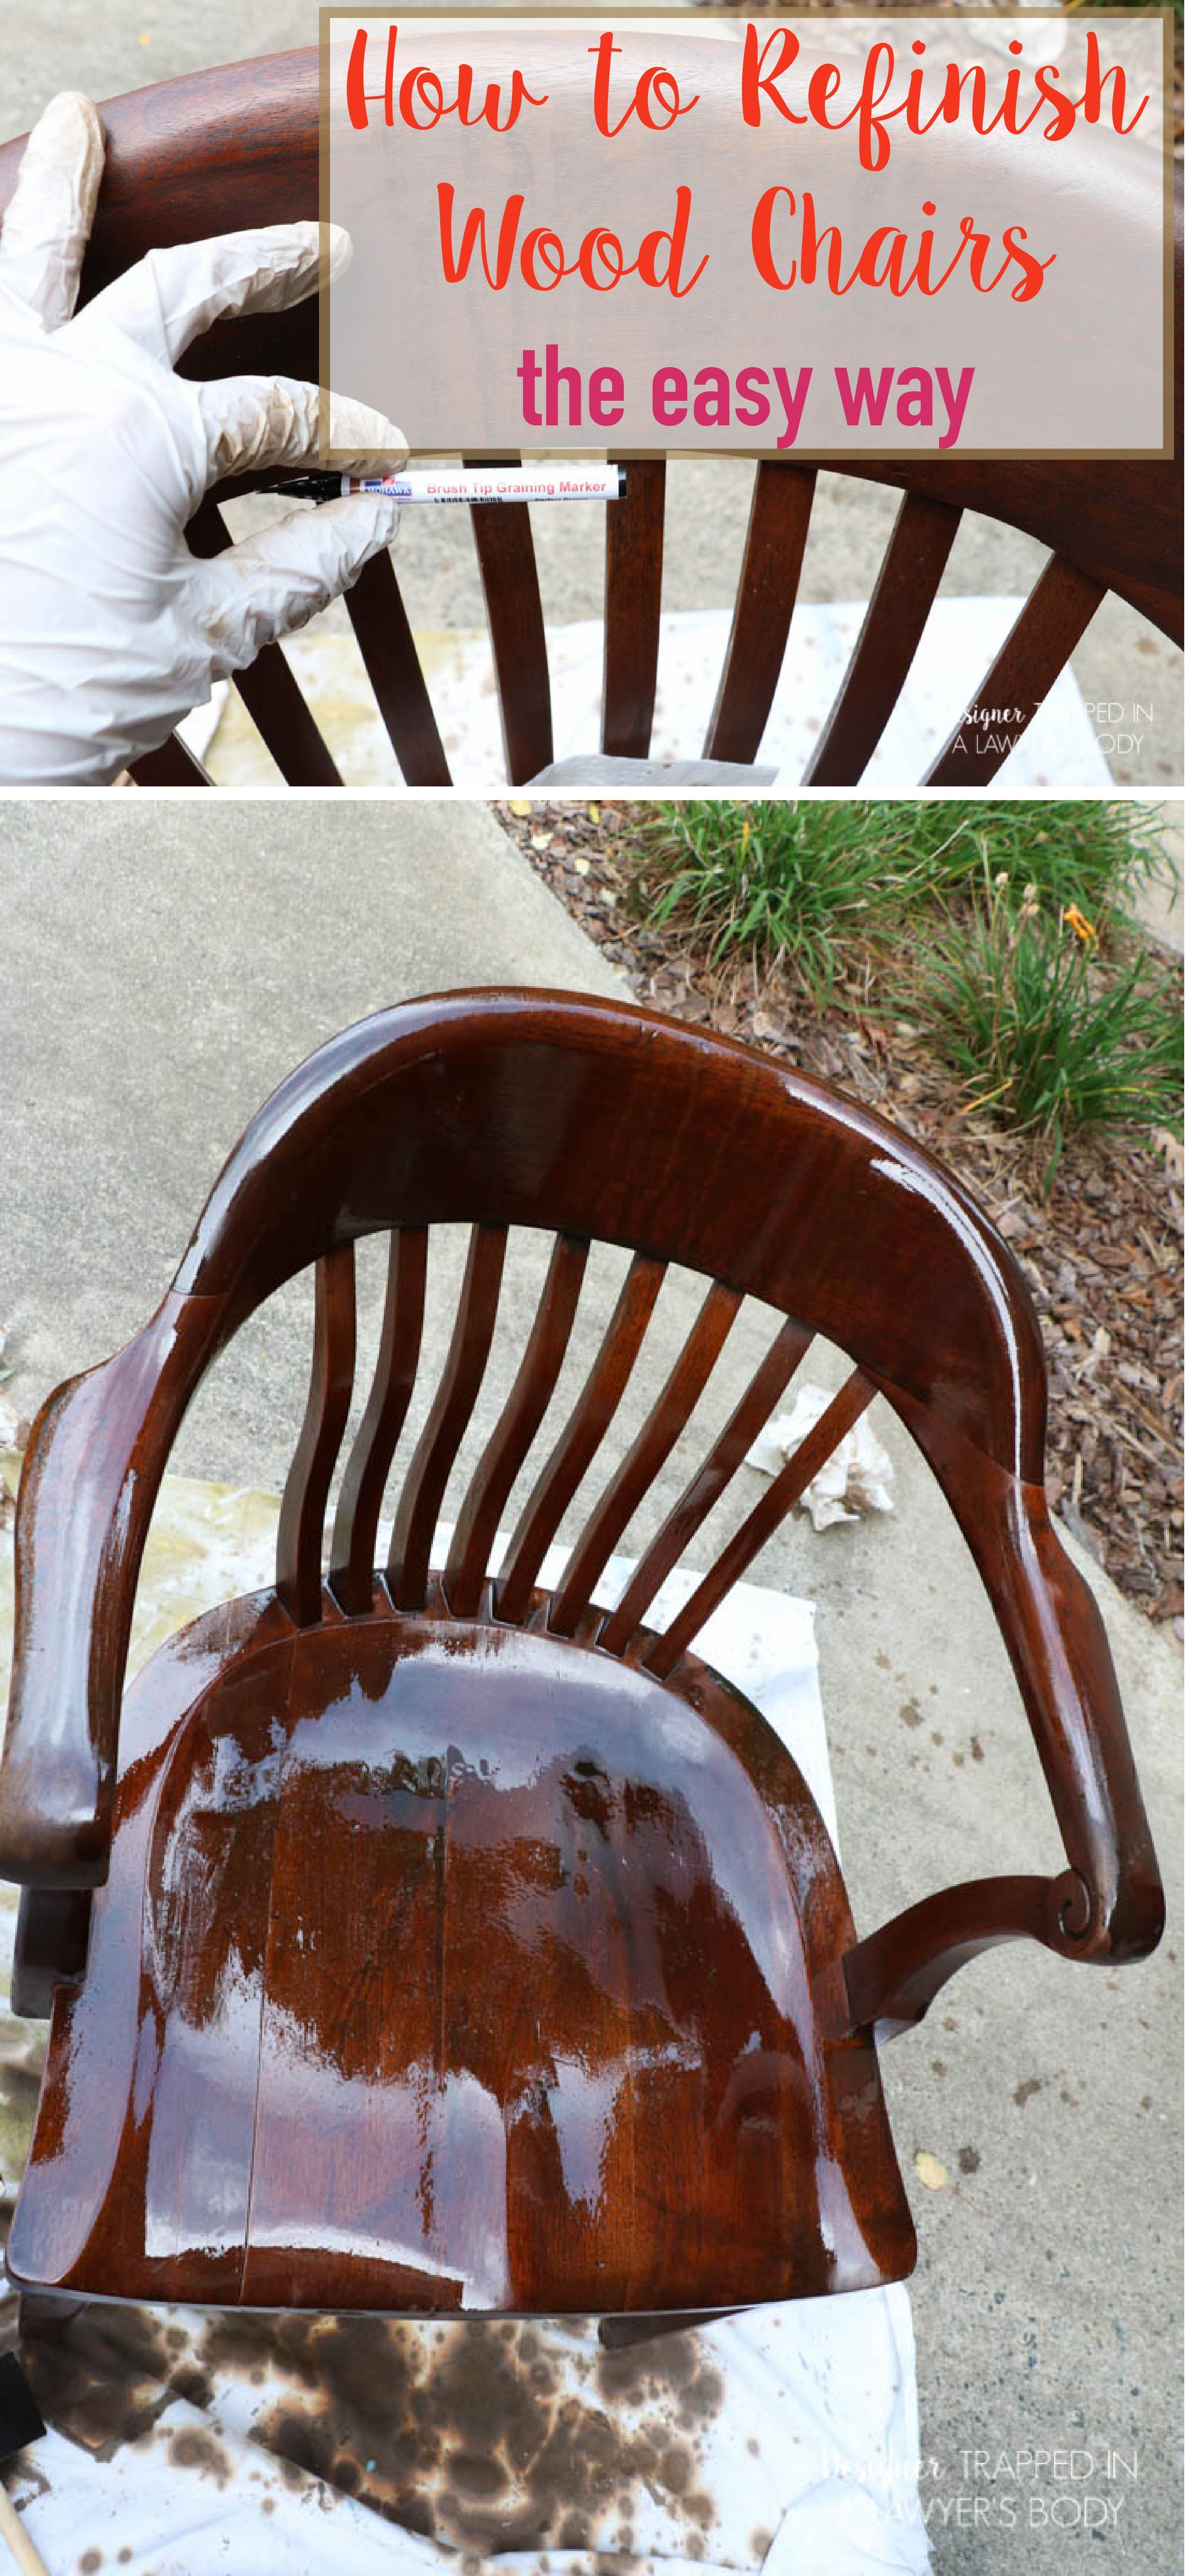 How To Refinish Wood Chairs Grey Desk Chair The Easy Way Furniture